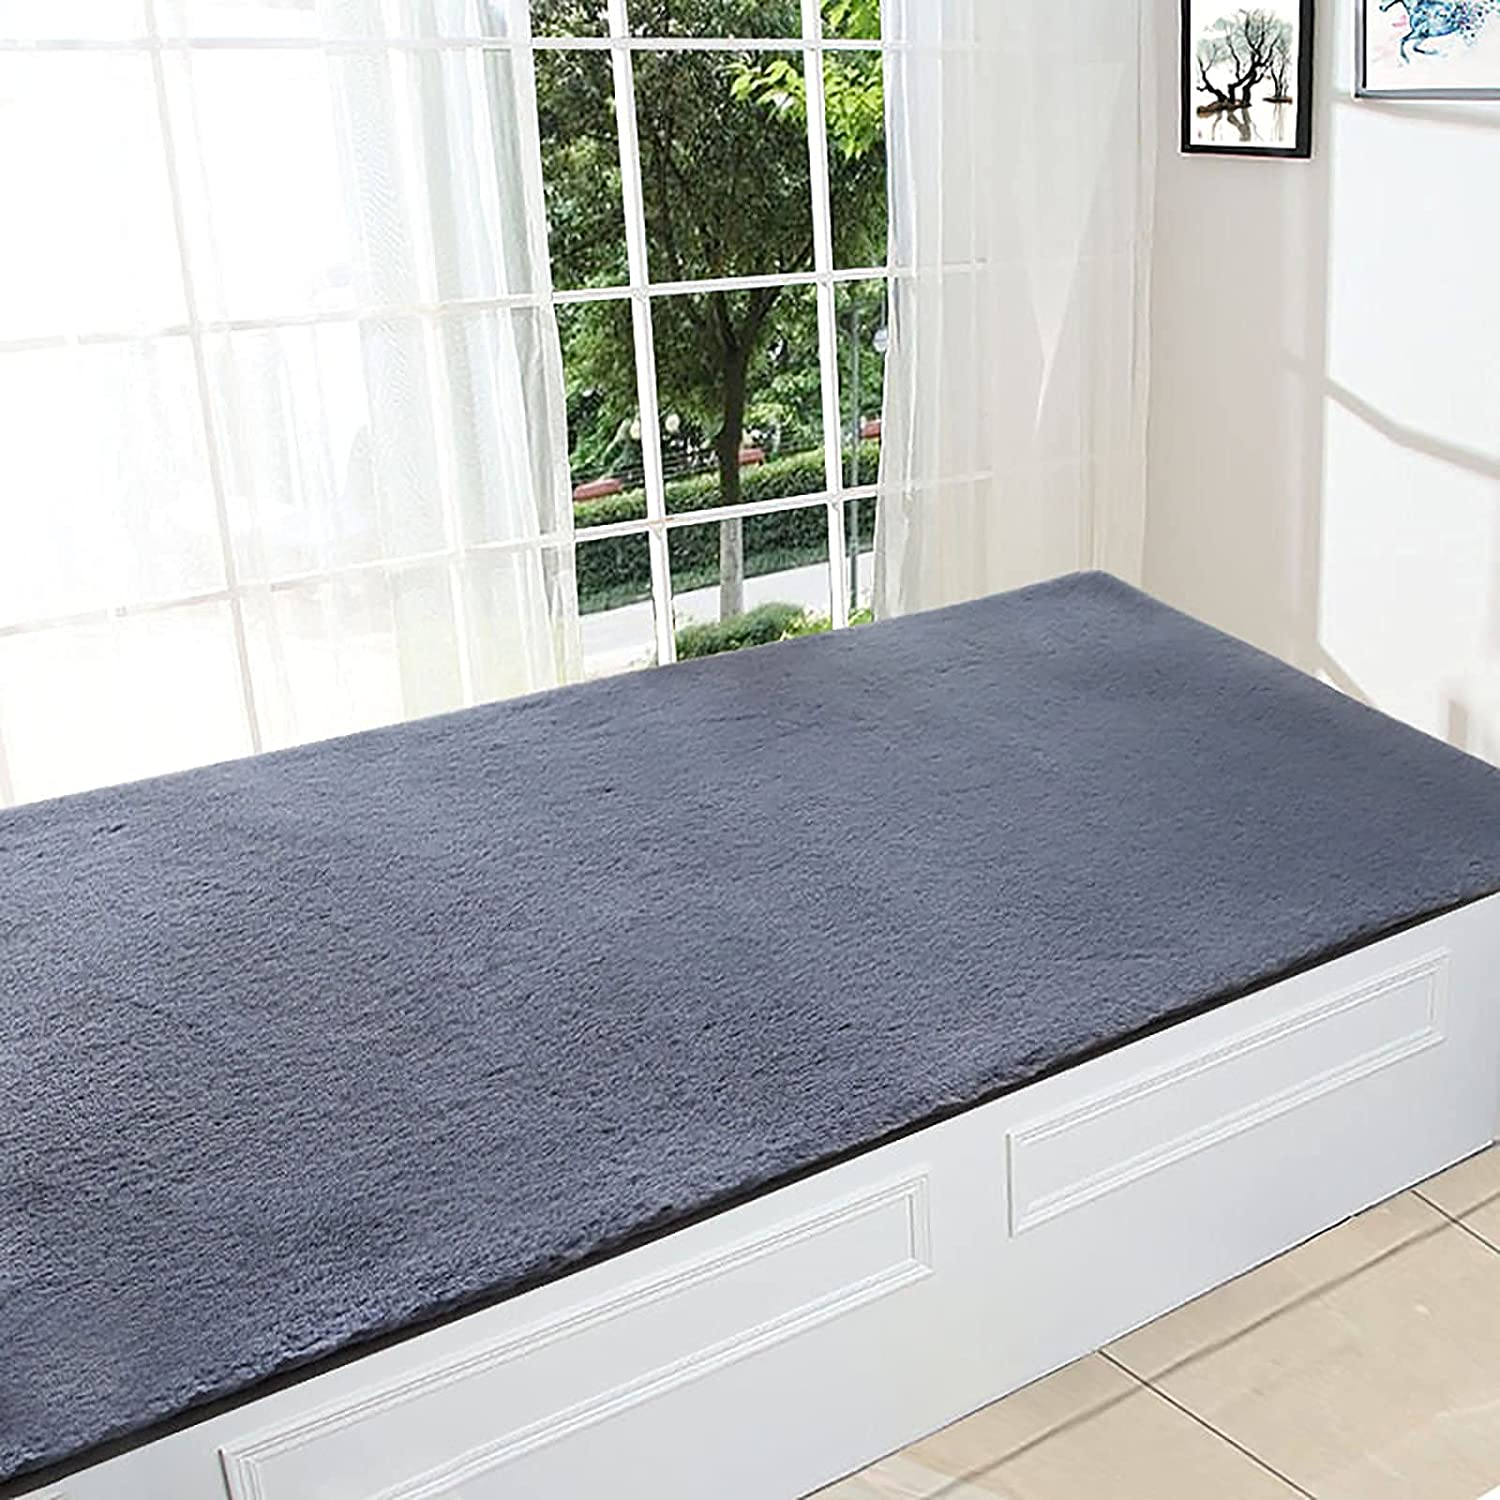 CJCSM Oakland Mall Area Rug Plush Bay Non-S Cushion Sill In a popularity Long Window